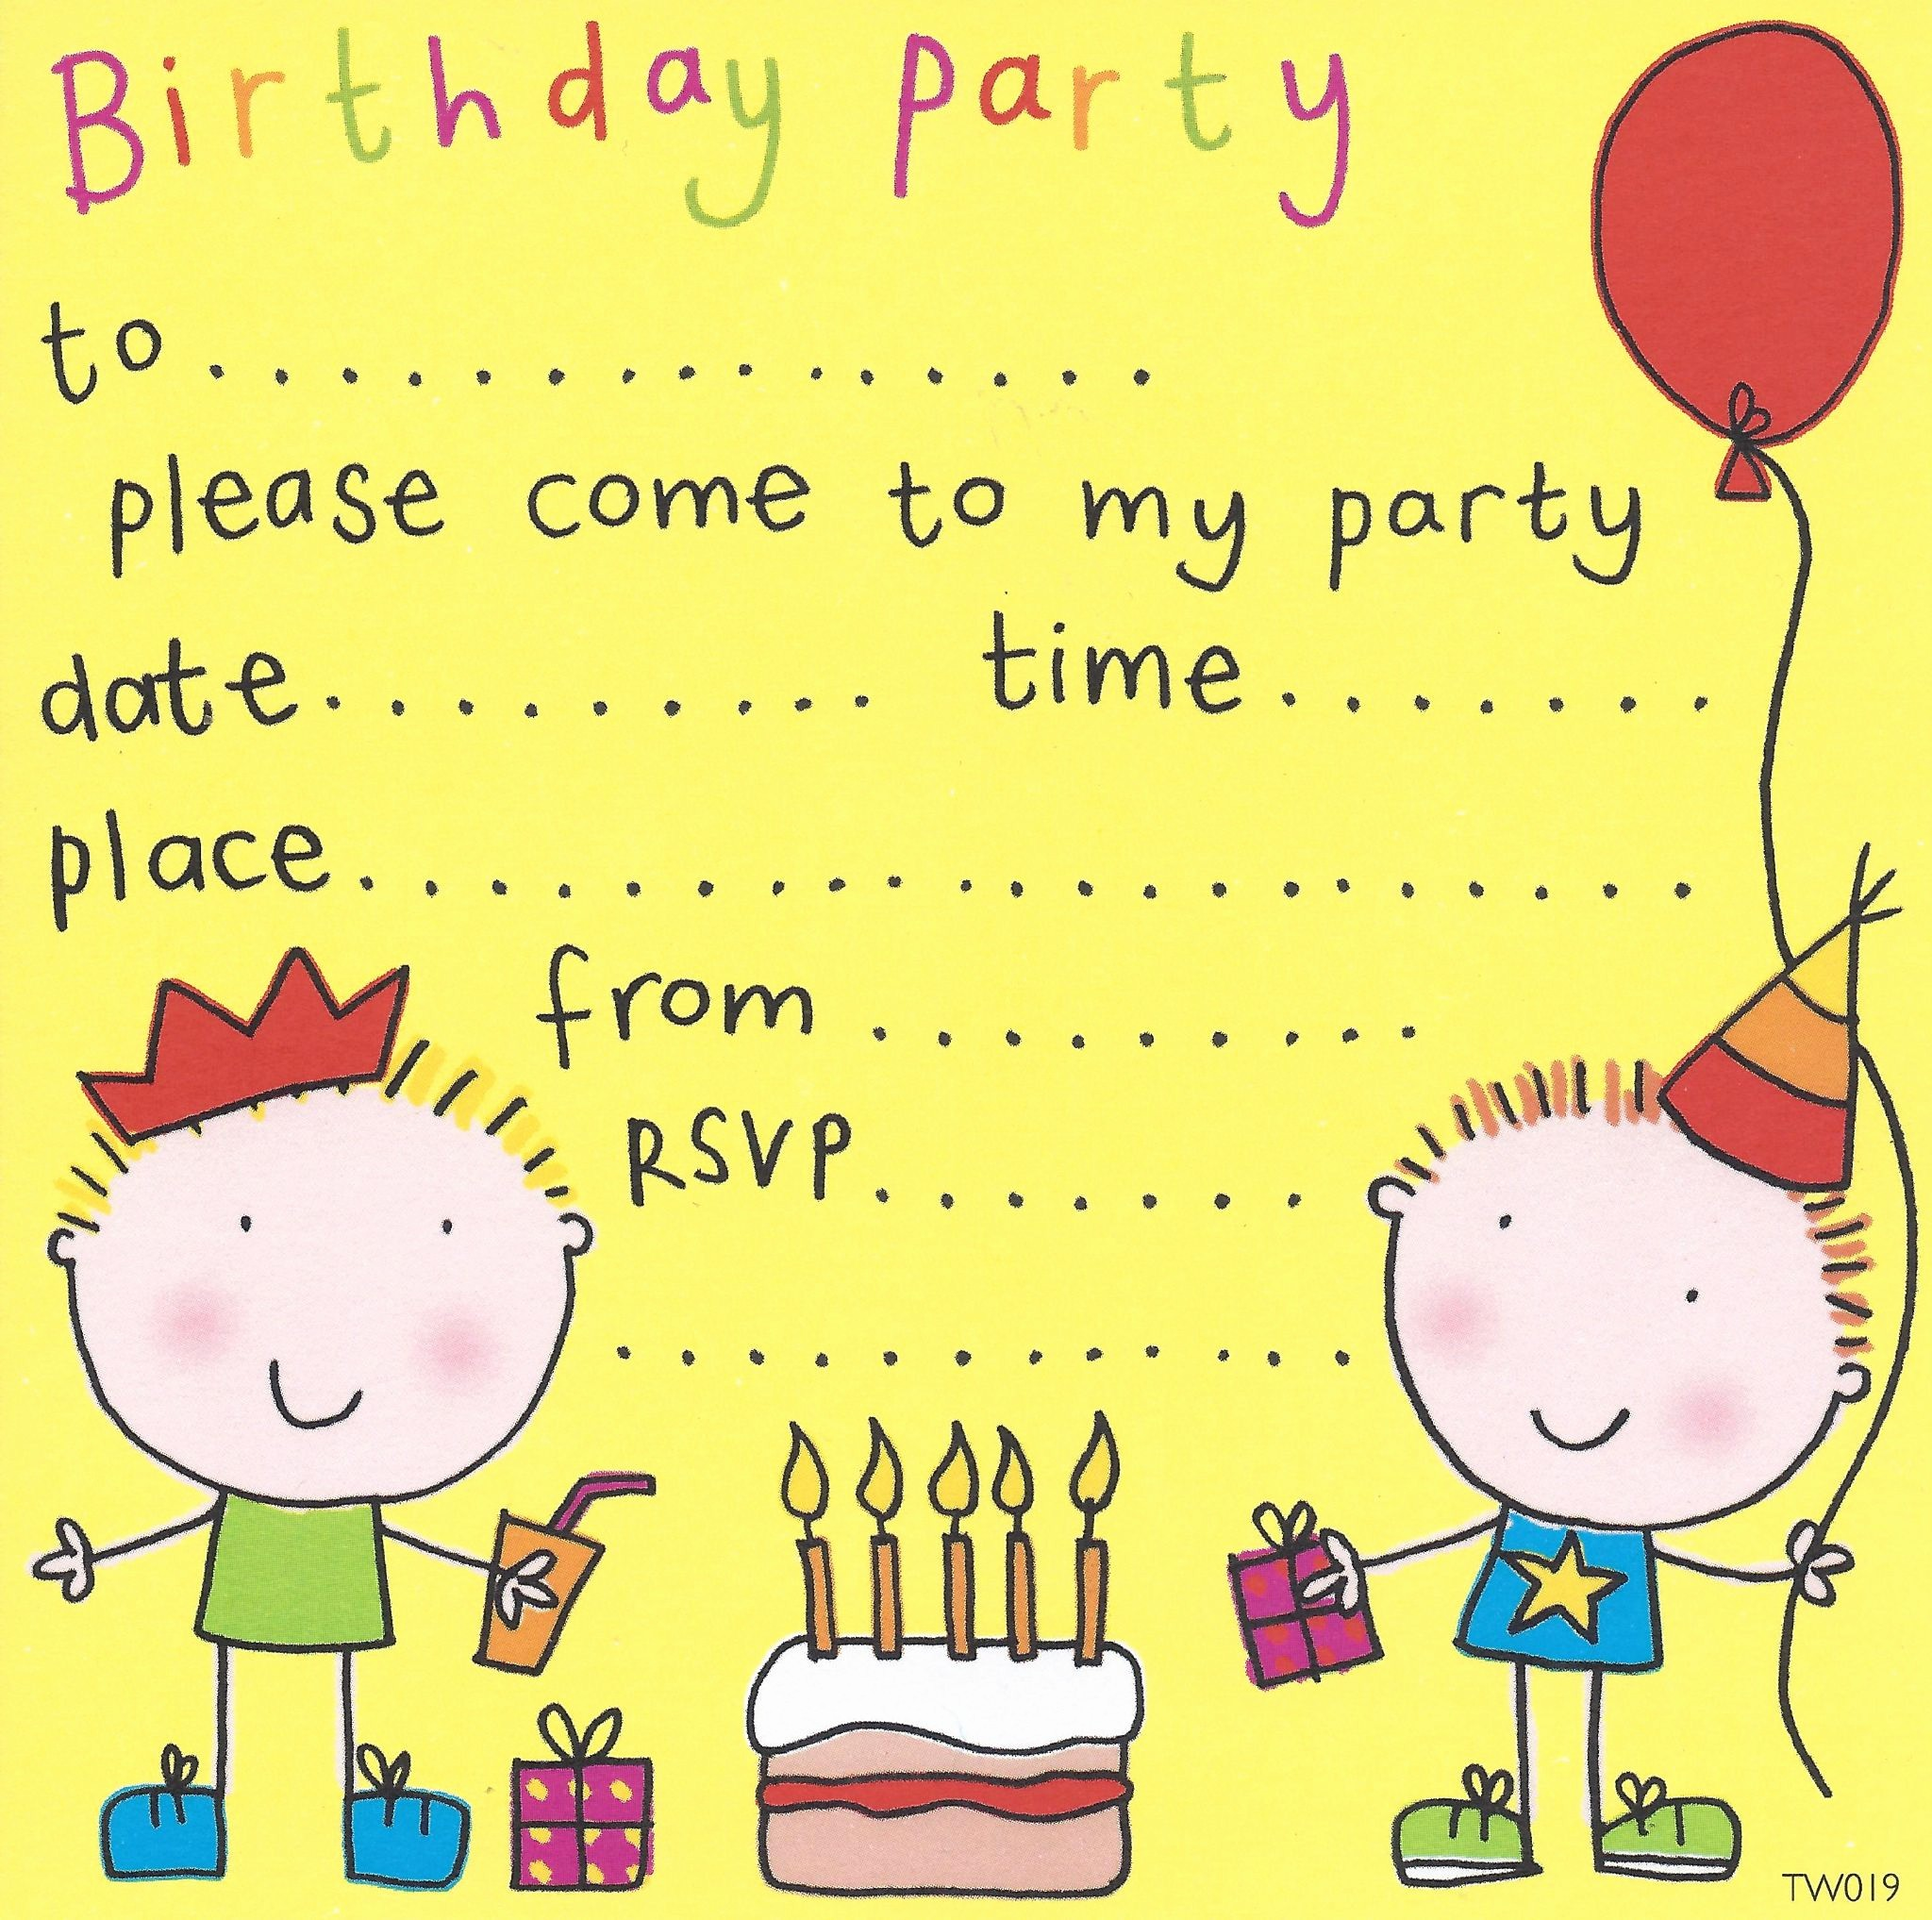 Kids Birthday Party Invite Templates Best Of Free Birthday Party Invites for Kids – Free Printable